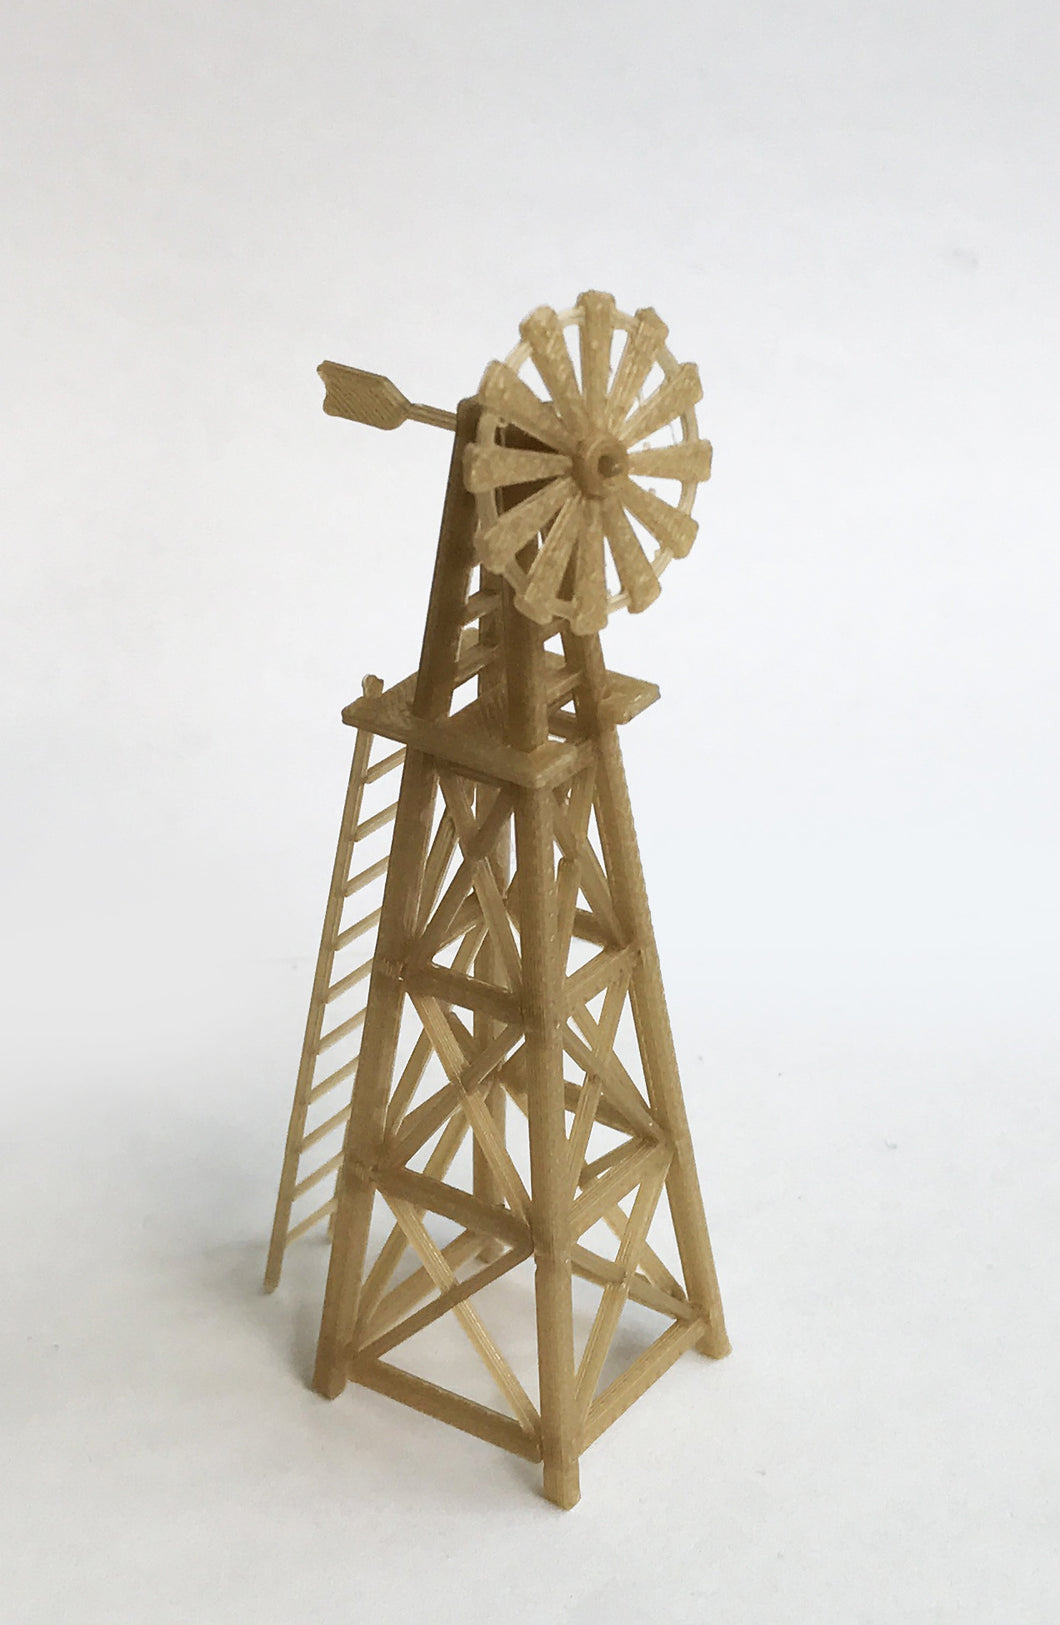 Country Farm Windmill (Gold) HO Scale 1:87 Outland Models Railway Layout